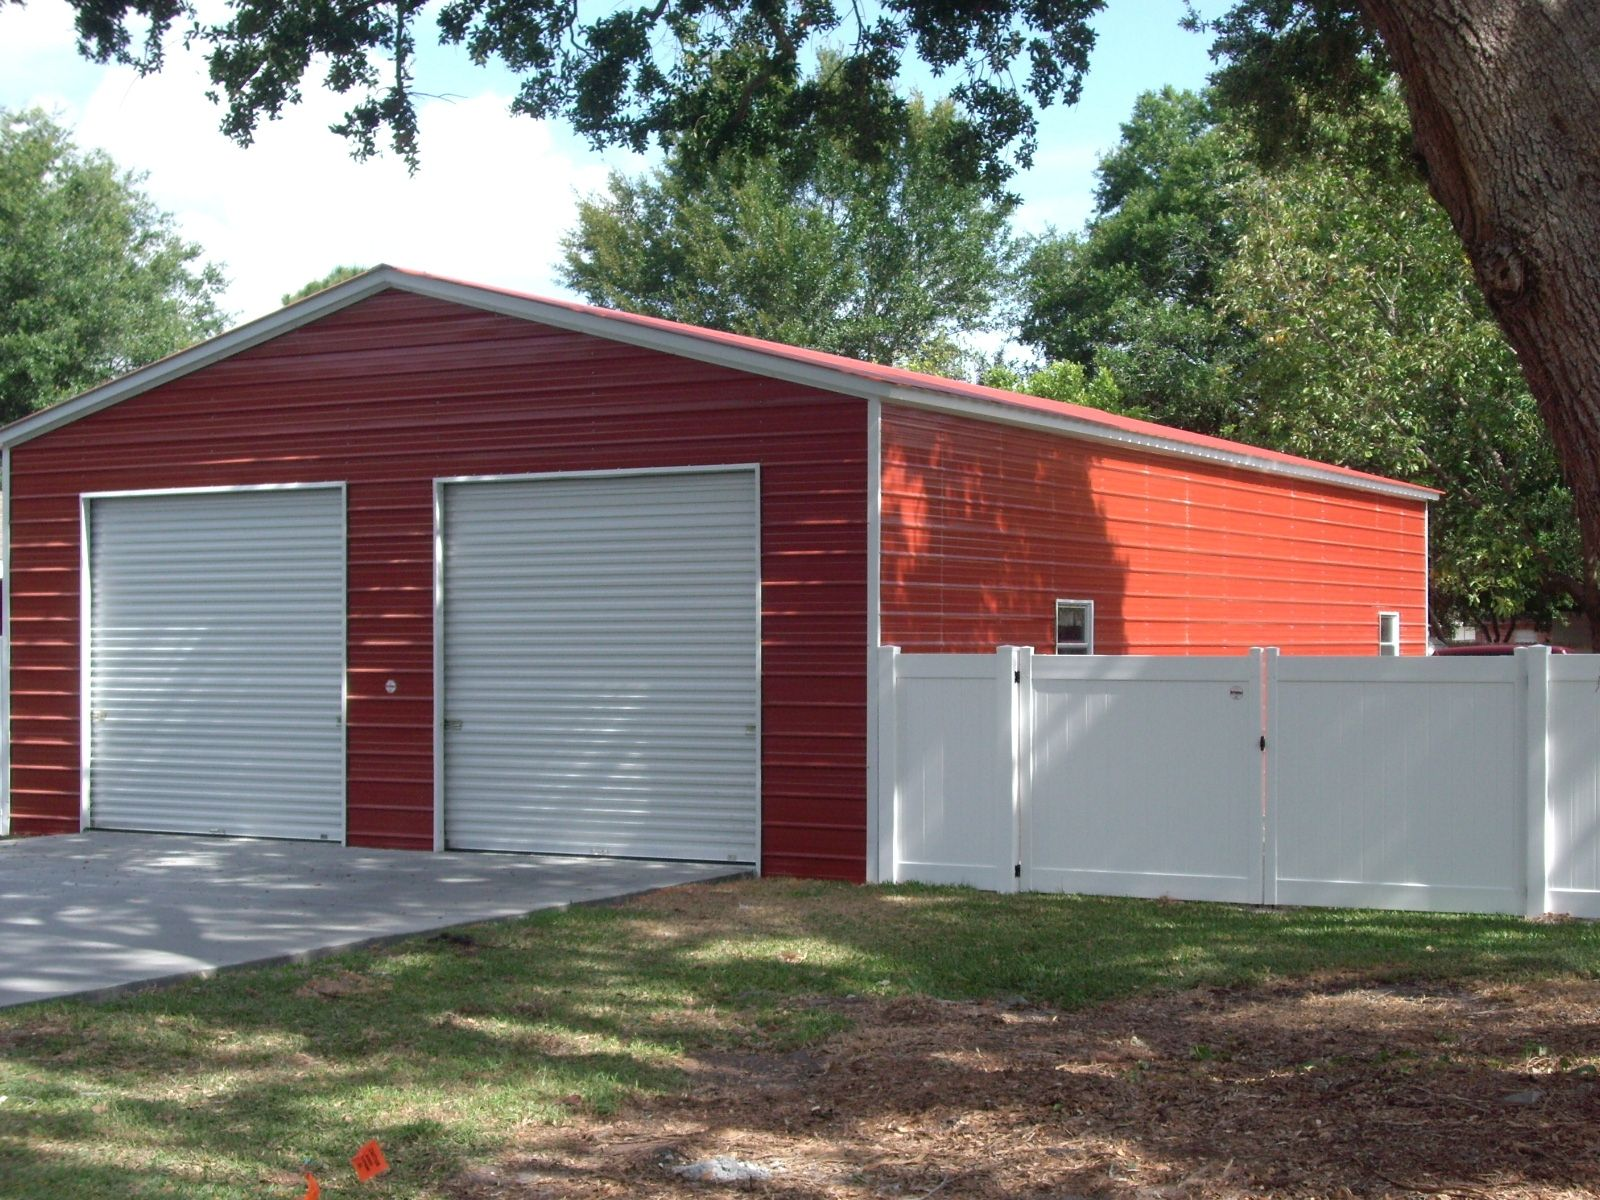 r 2 car Garage Shop with two 10x10 roll up doors 2windows and